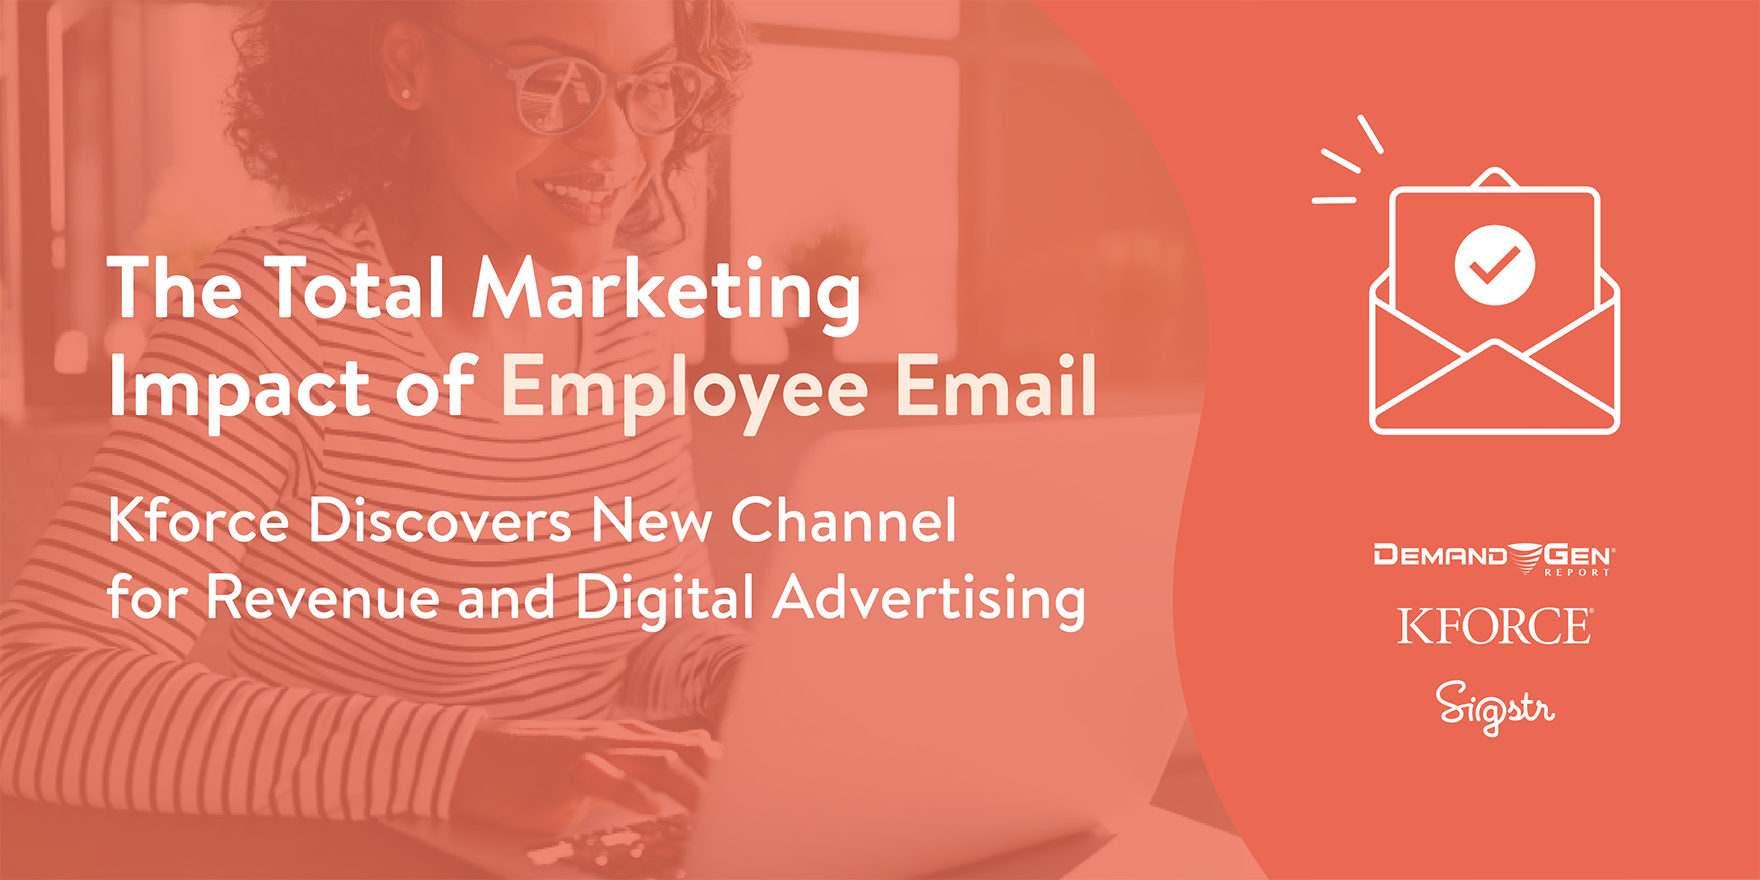 The Total Marketing Impact of Employee Email